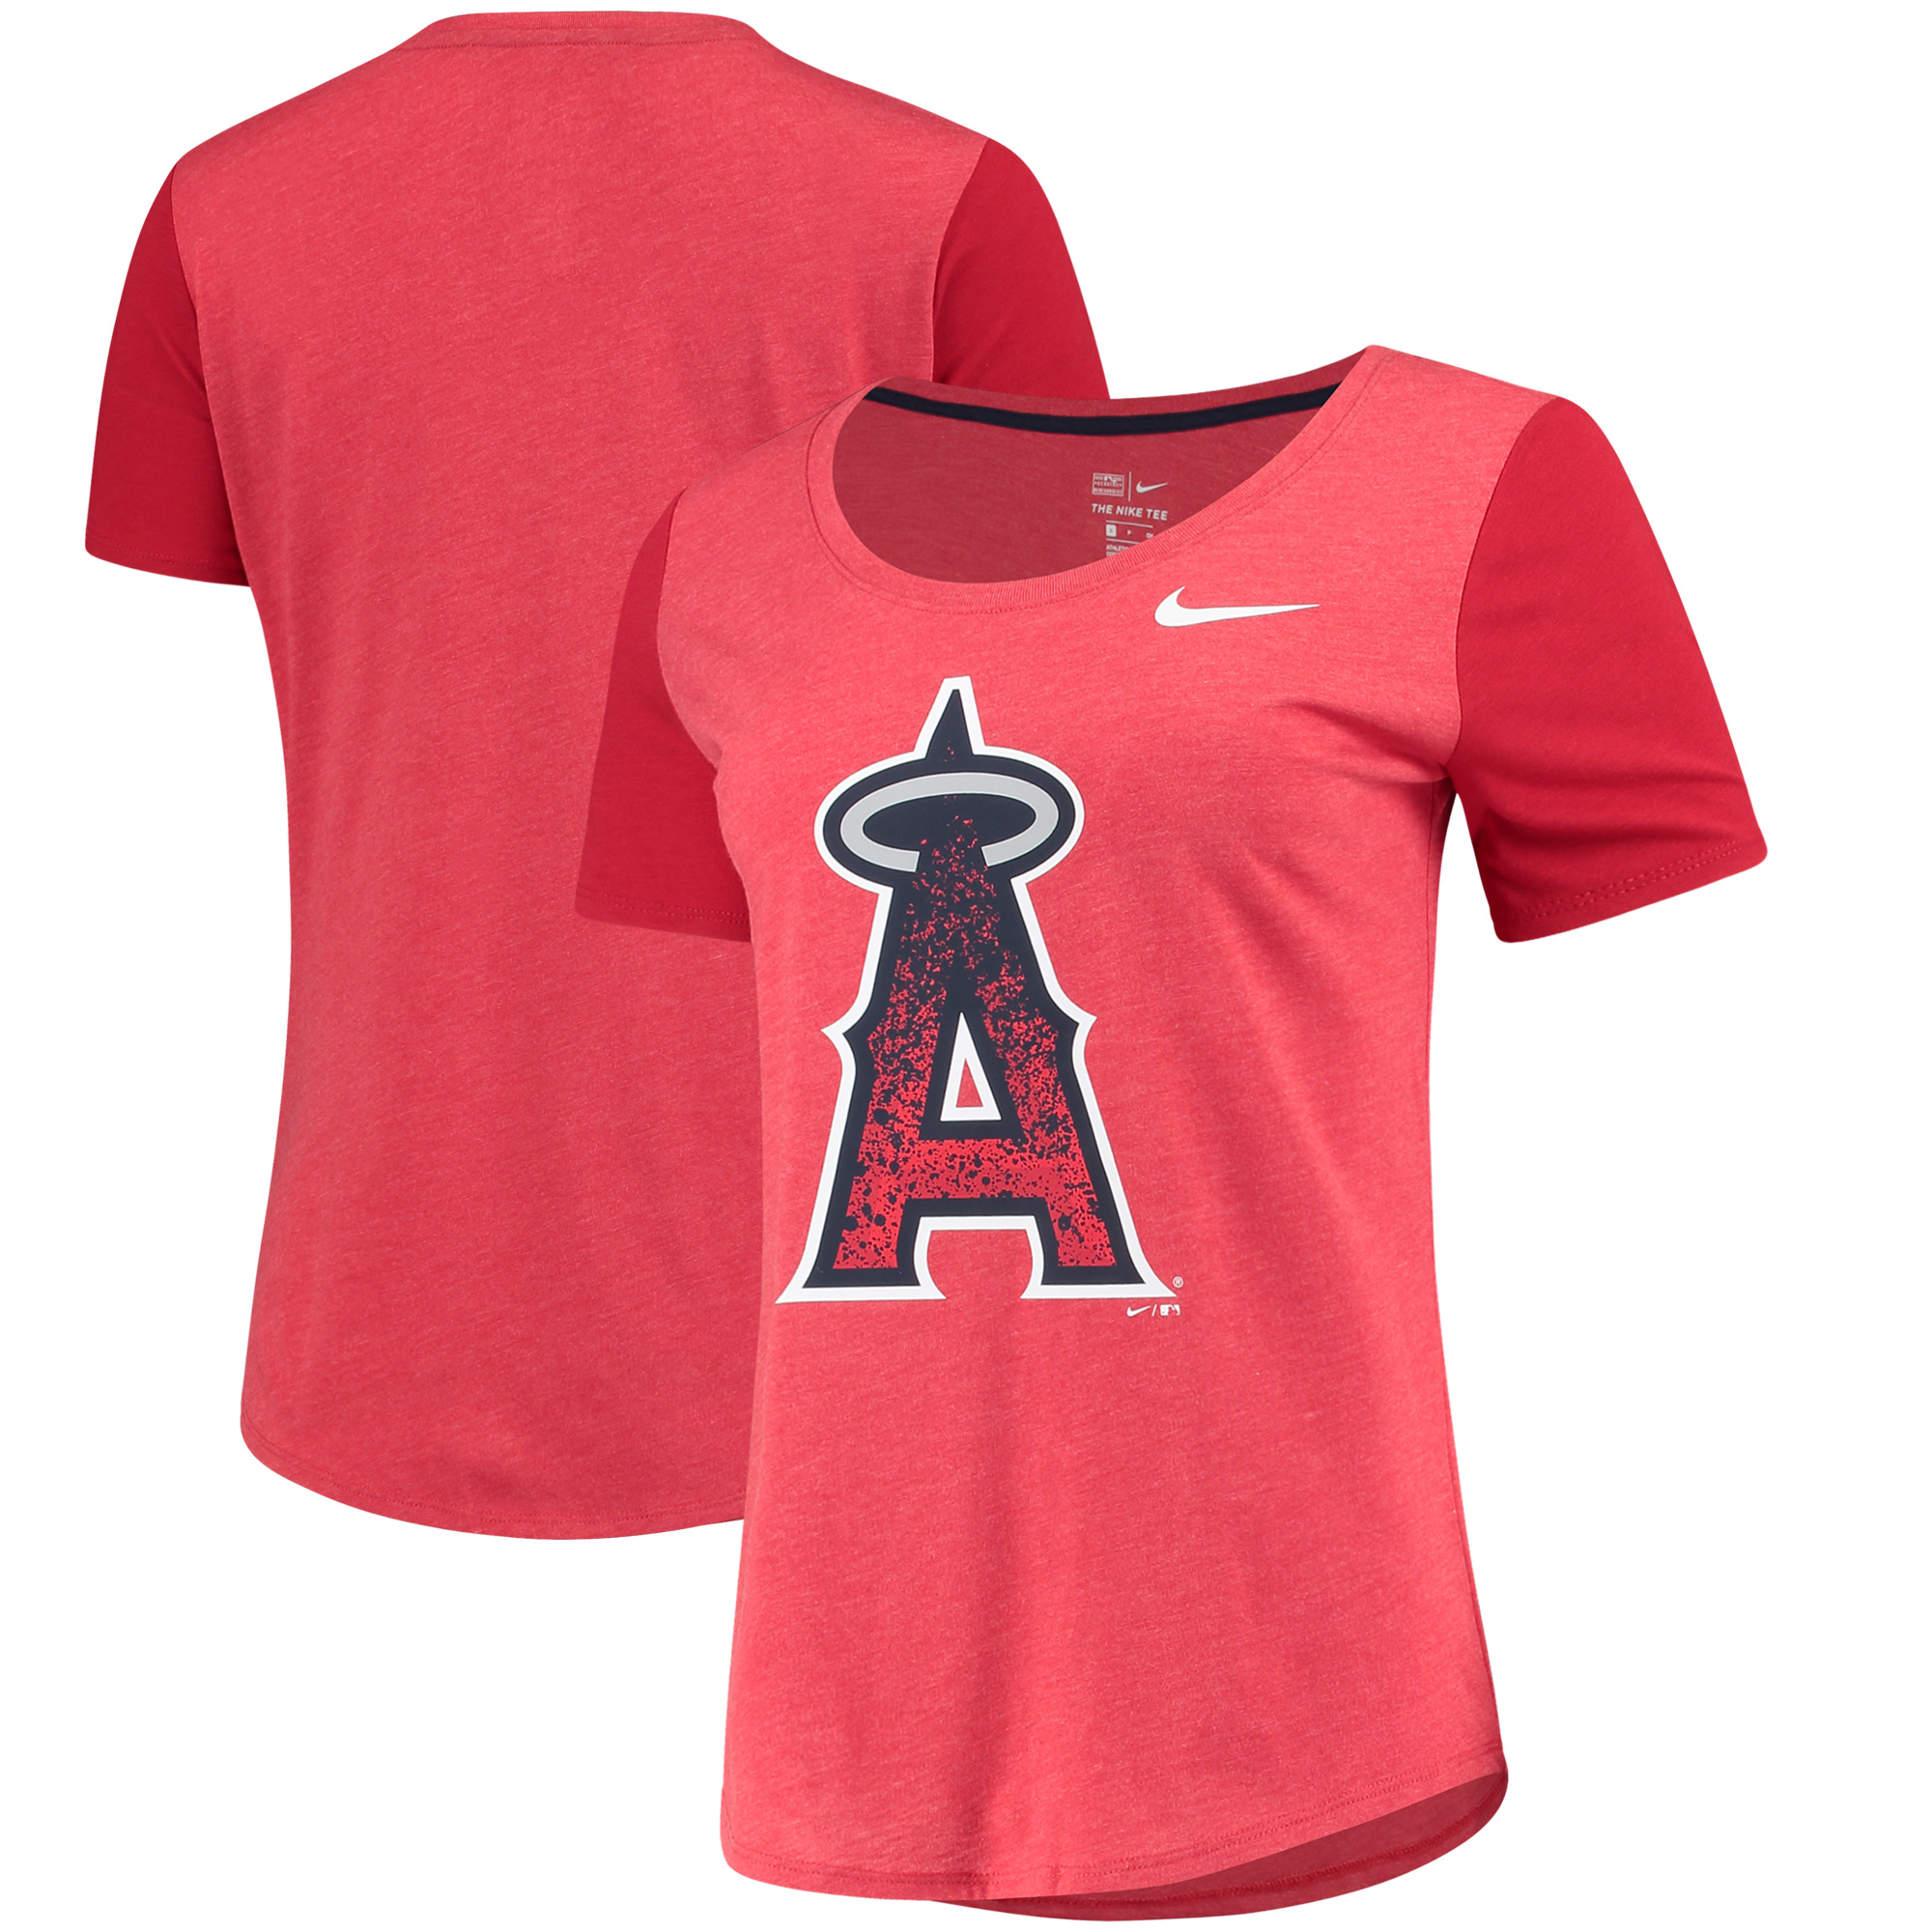 Los Angeles Angels Nike Women's Tri-Blend Scoop Neck T-Shirt - Red